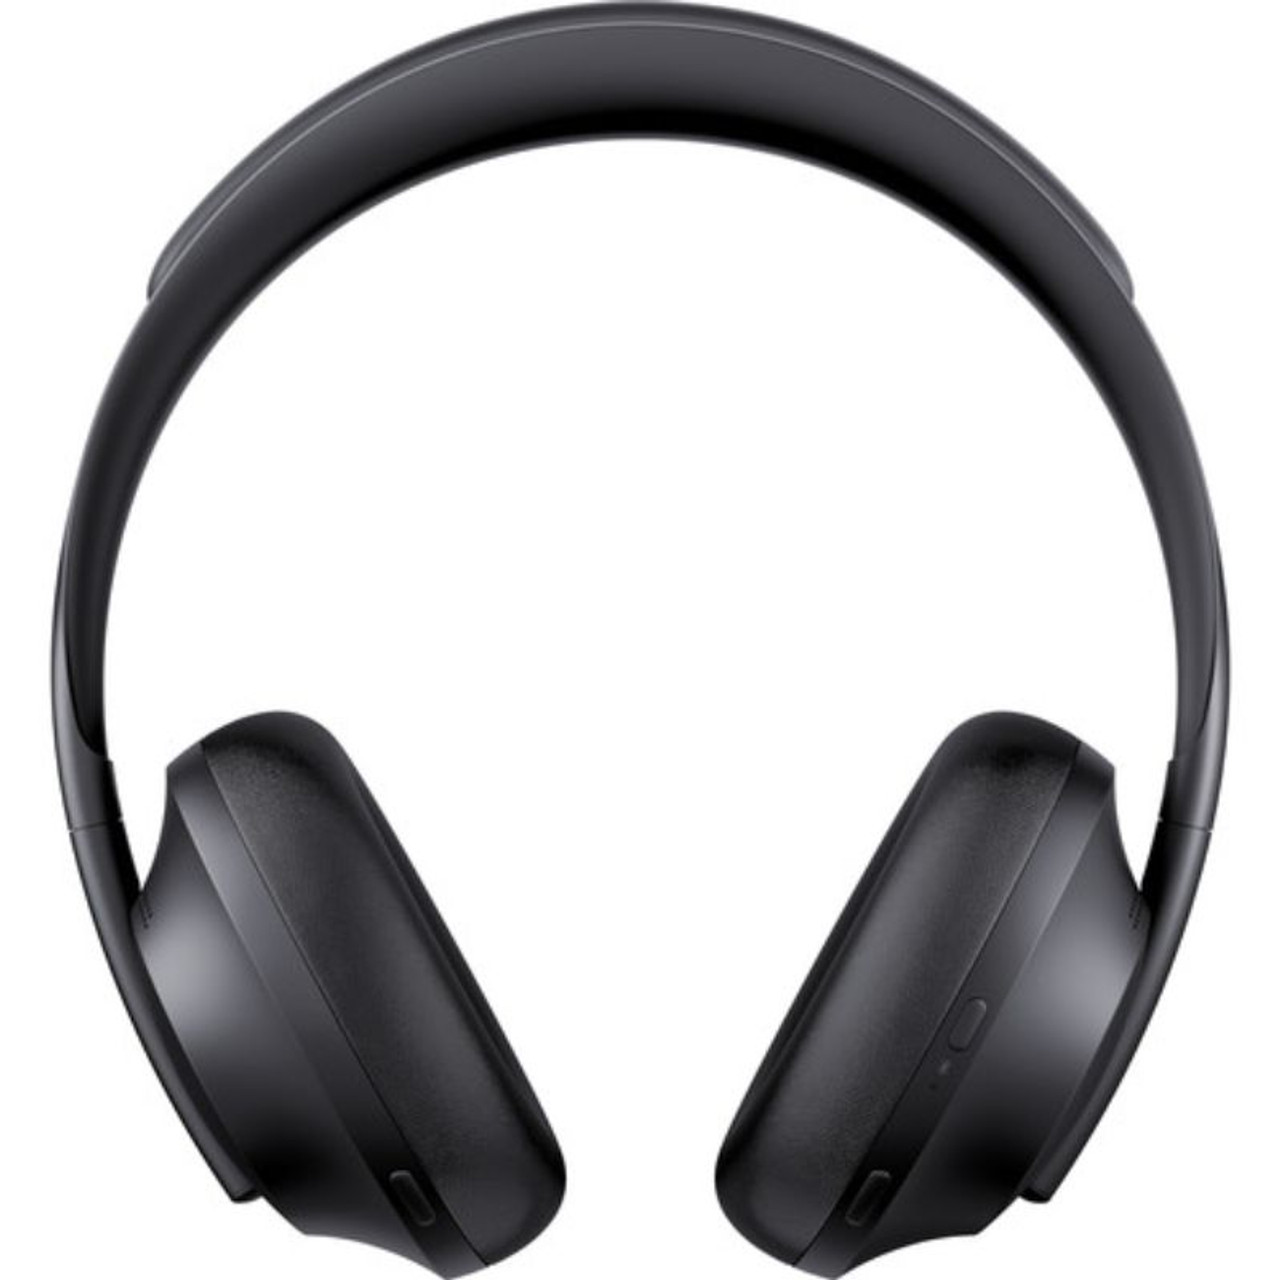 Bose Noise Cancelling 700 Wireless Over-Ear Noise Cancelling Headphone